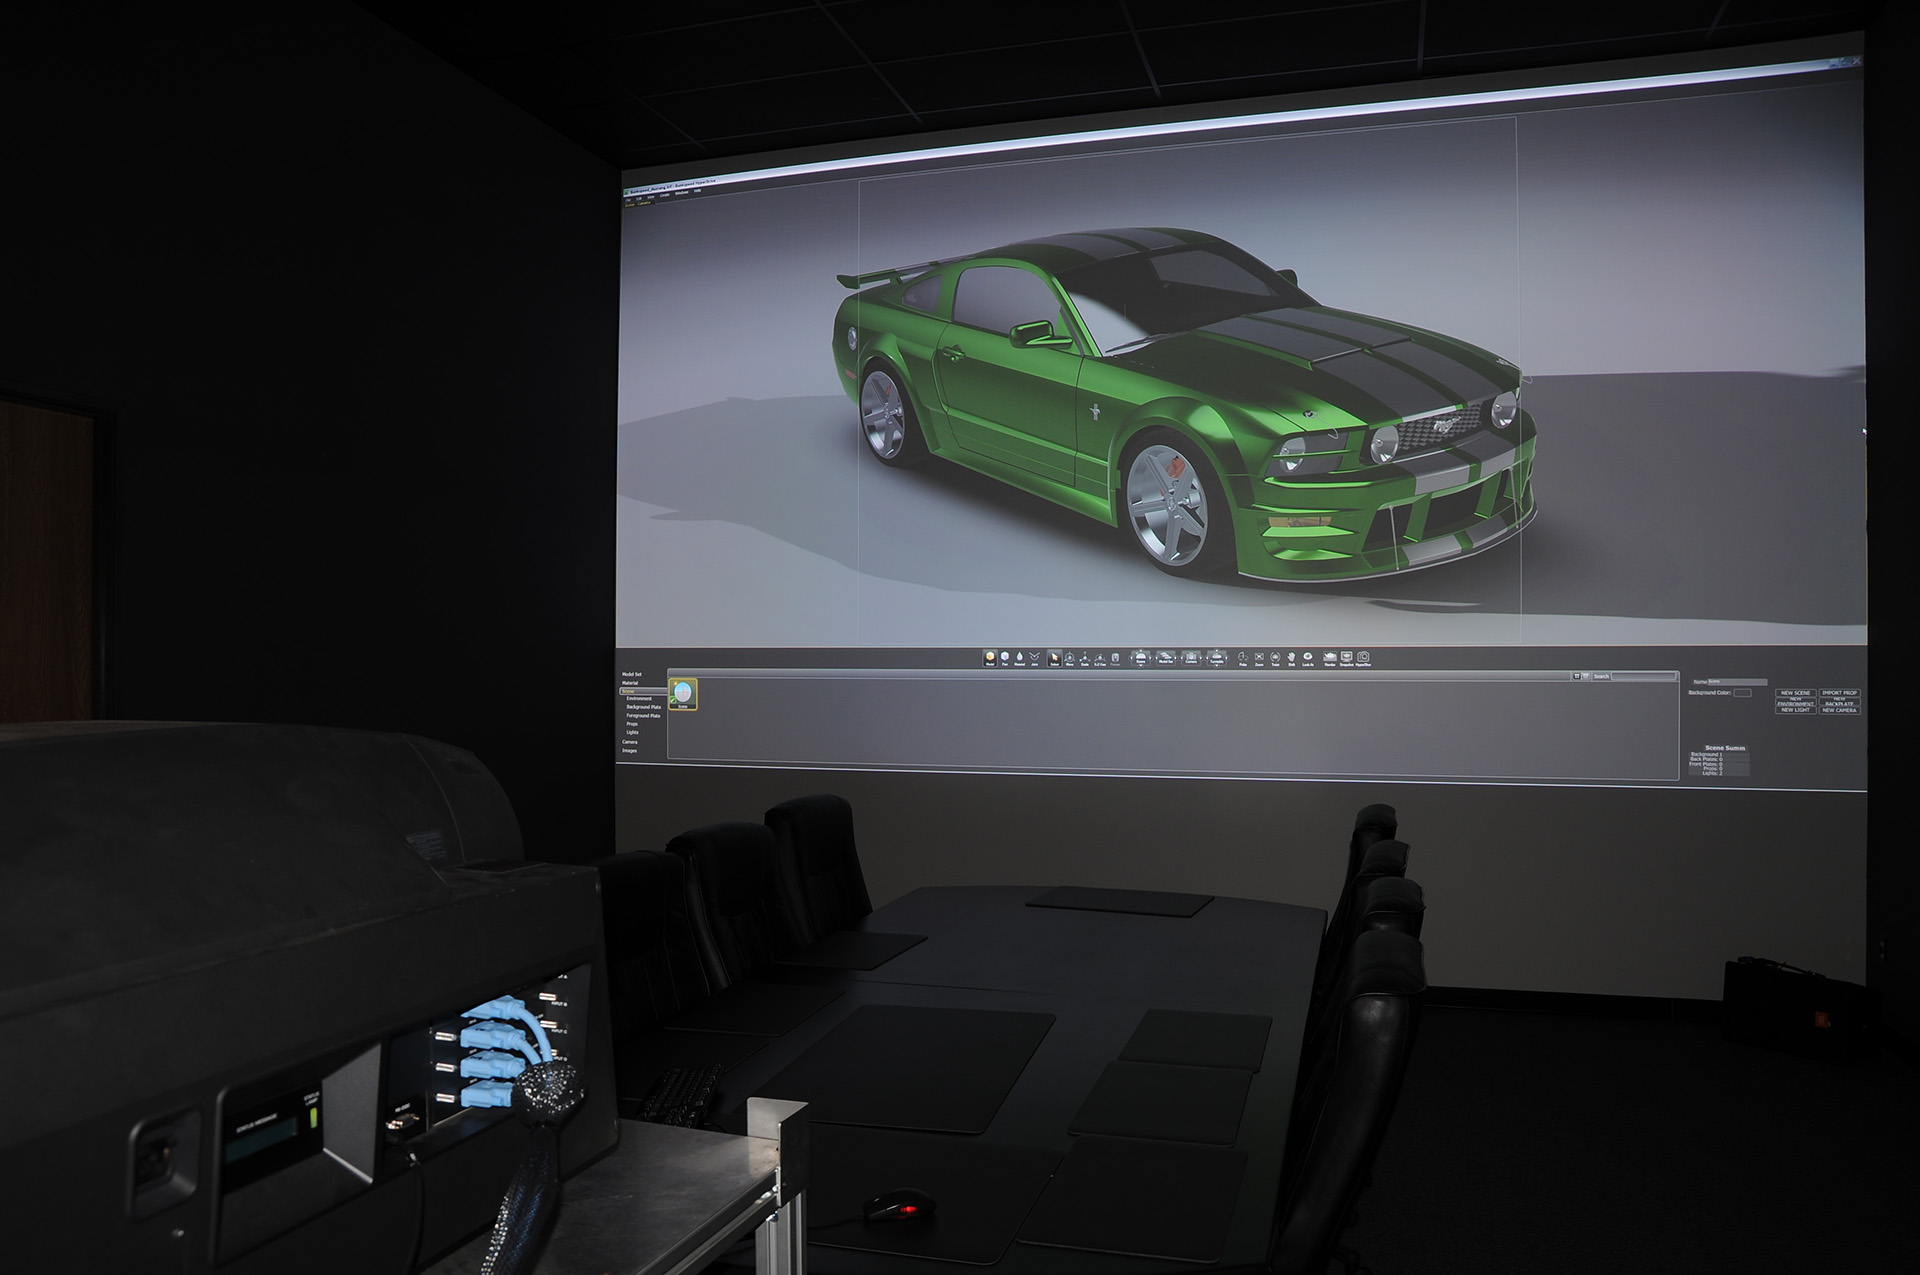 Ford mustang design 4K projection equipment rendering